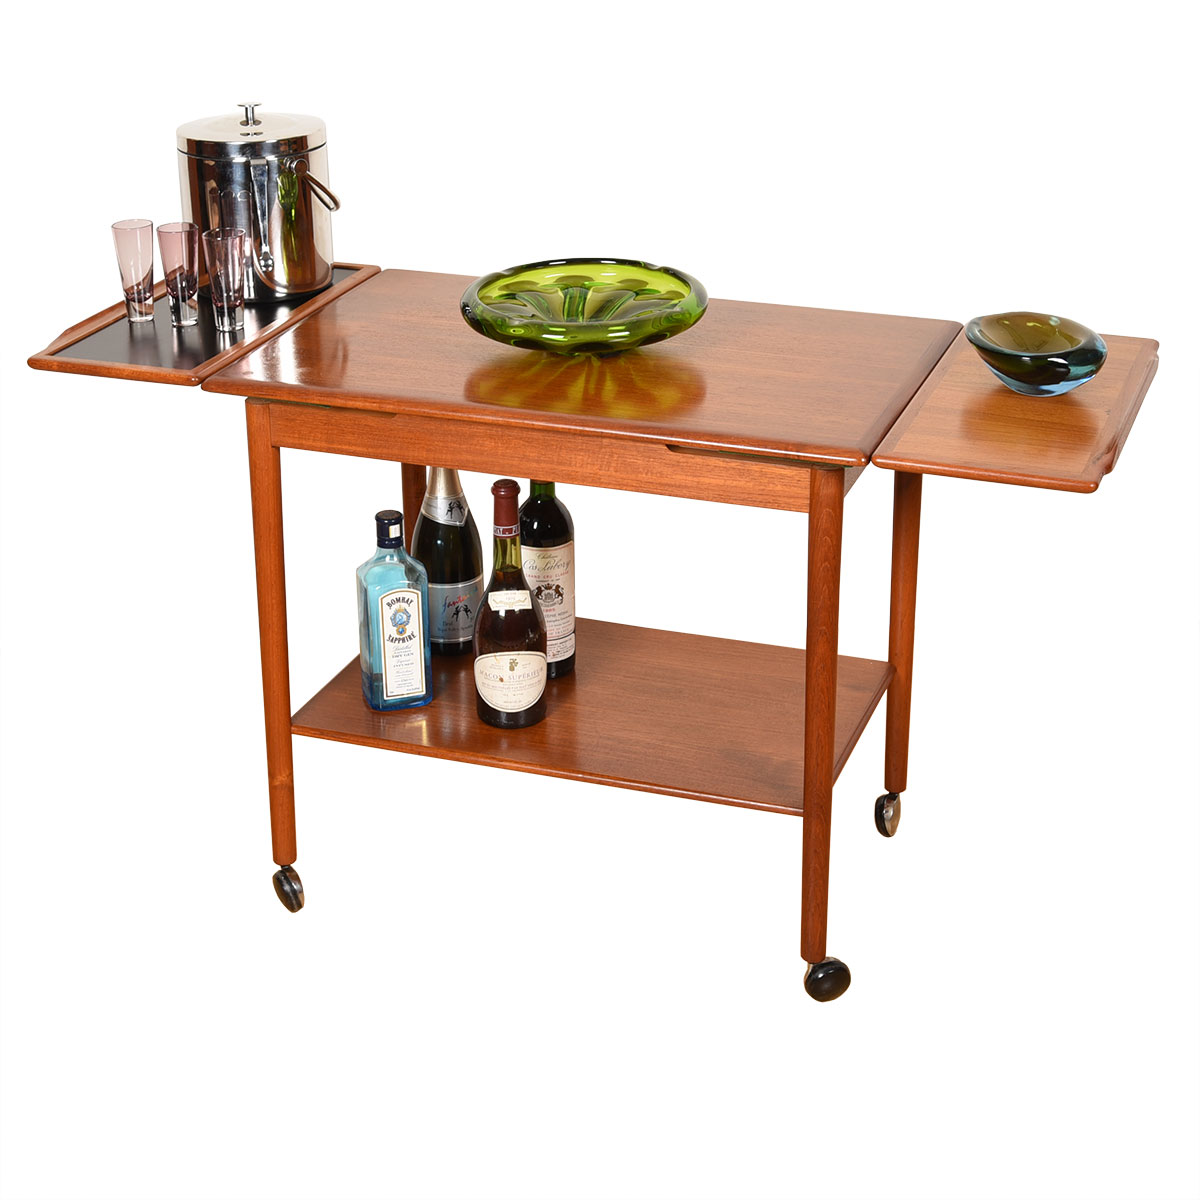 Expanding Danish Teak Rolling Bar / Serving Cart with Leaves